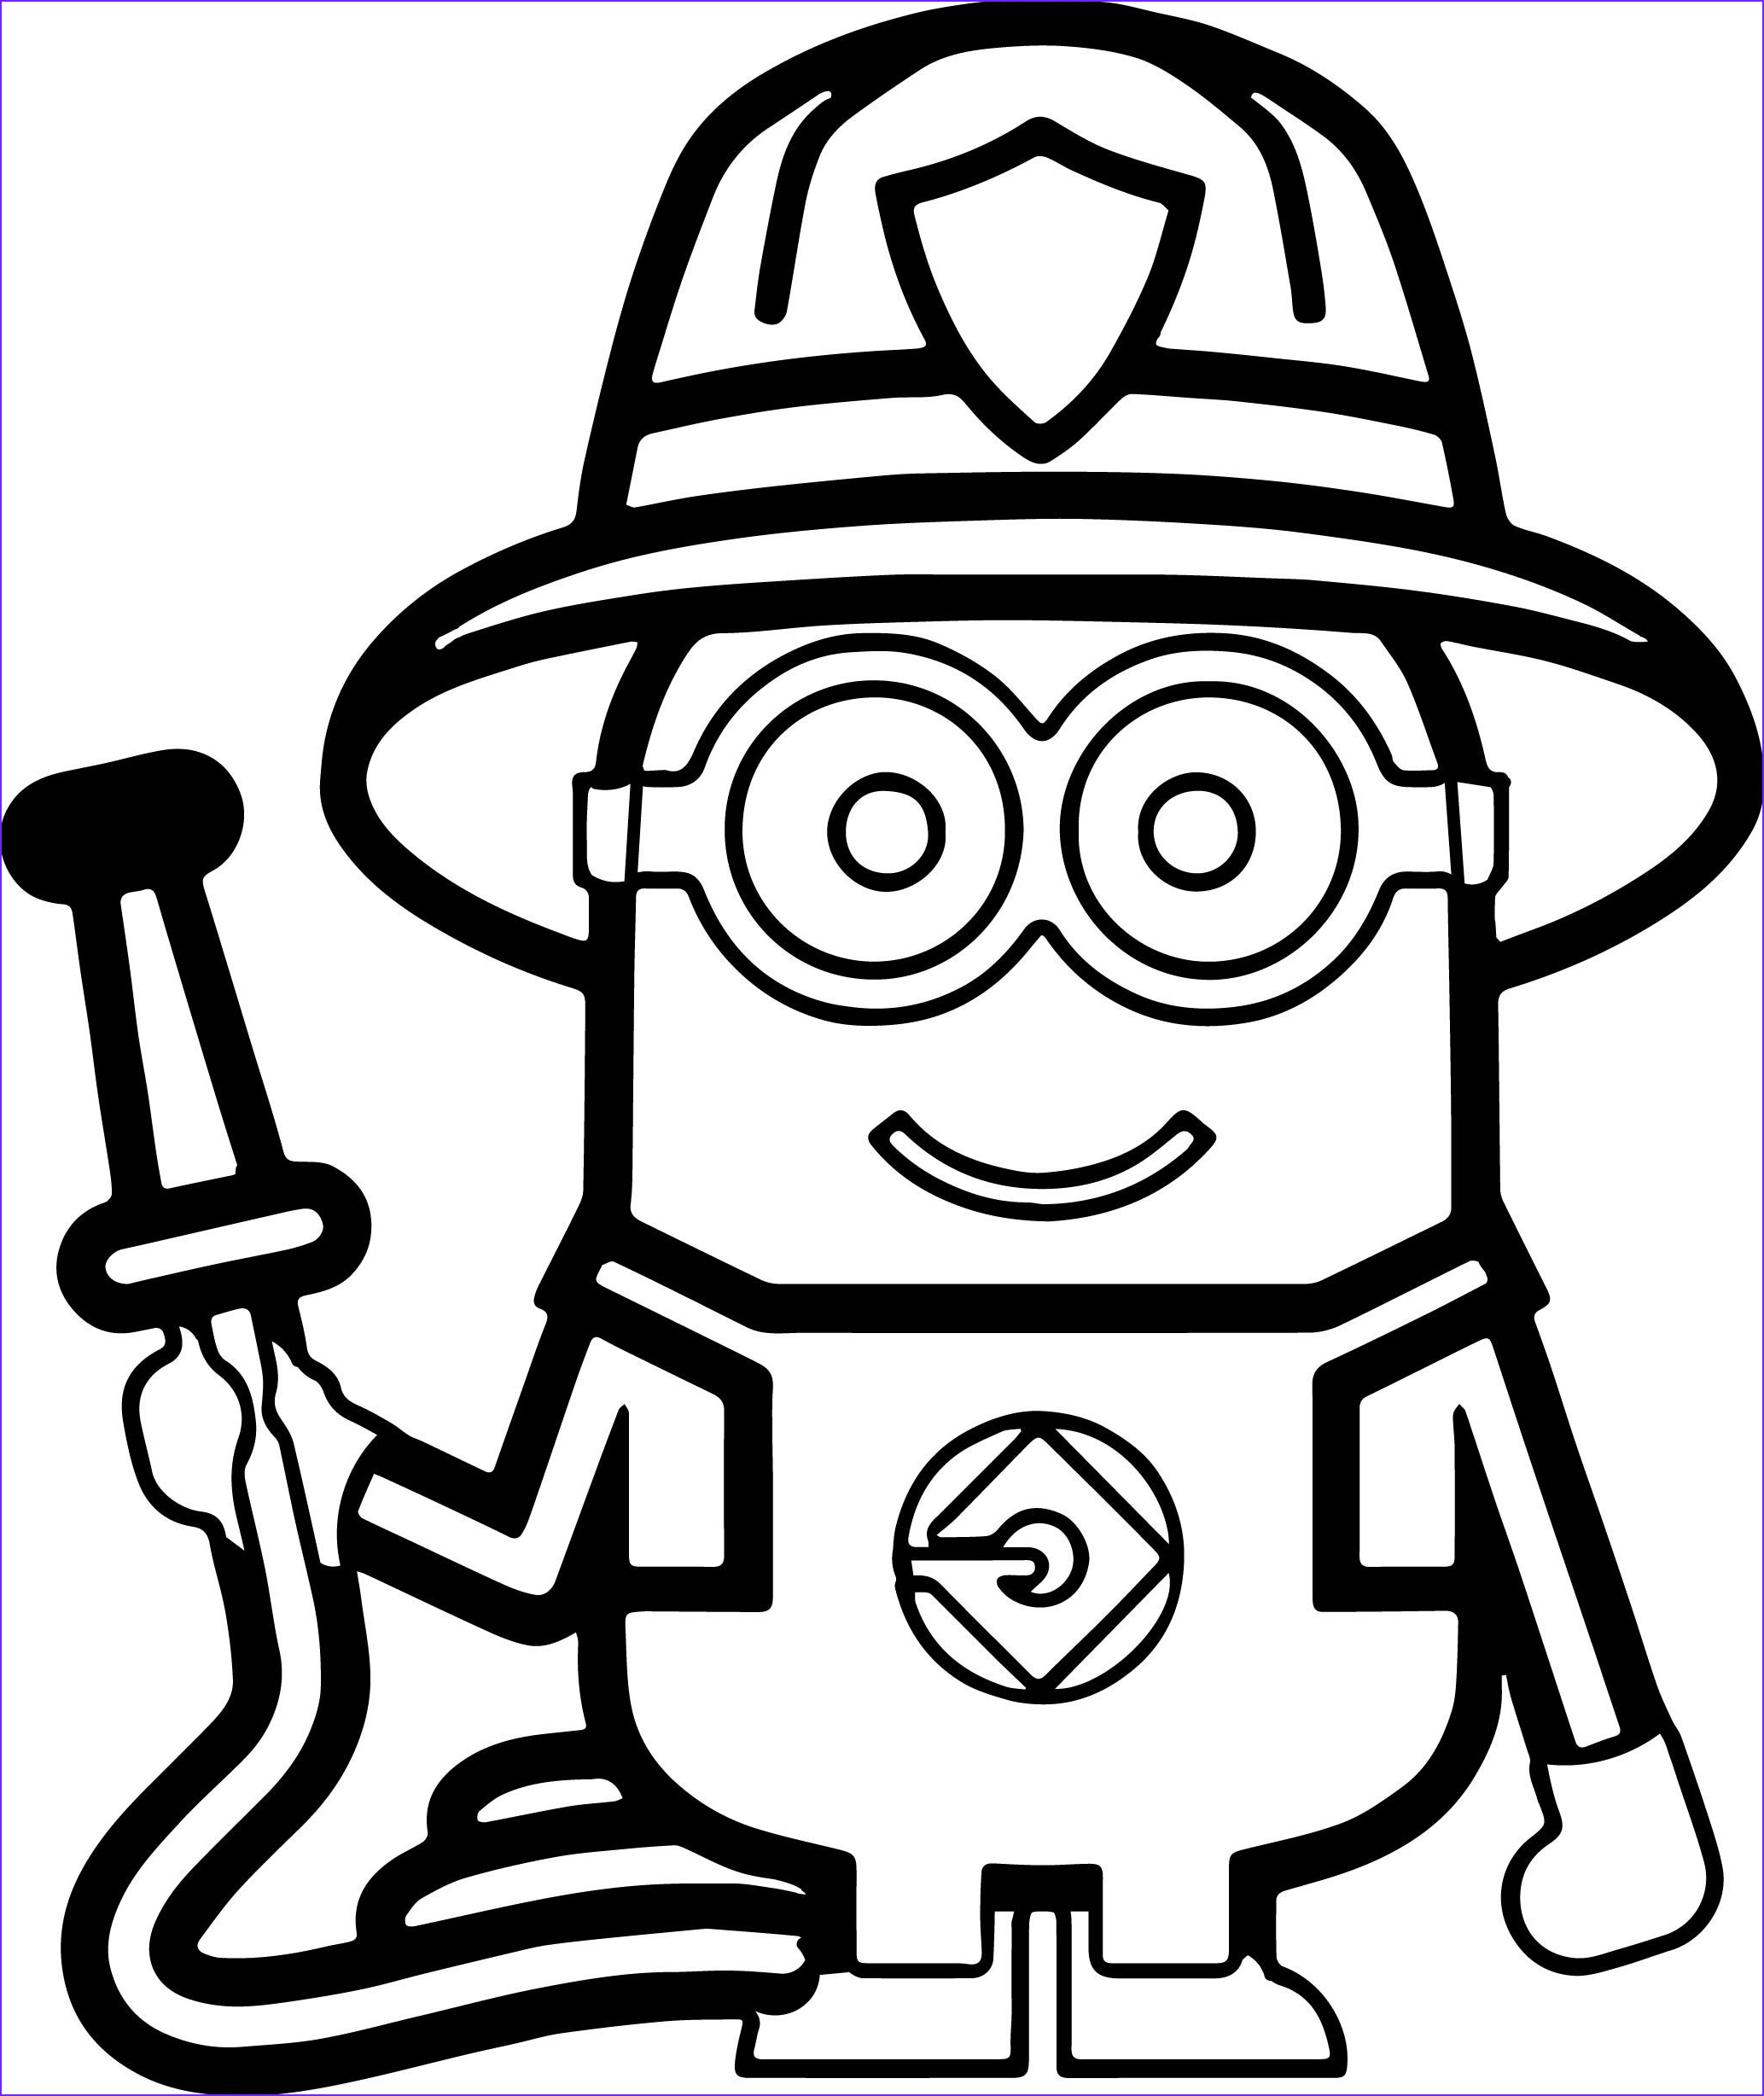 Coloring Pages Minions Beautiful Collection Minions Fireman Coloring Page ️more Pins Like This E at